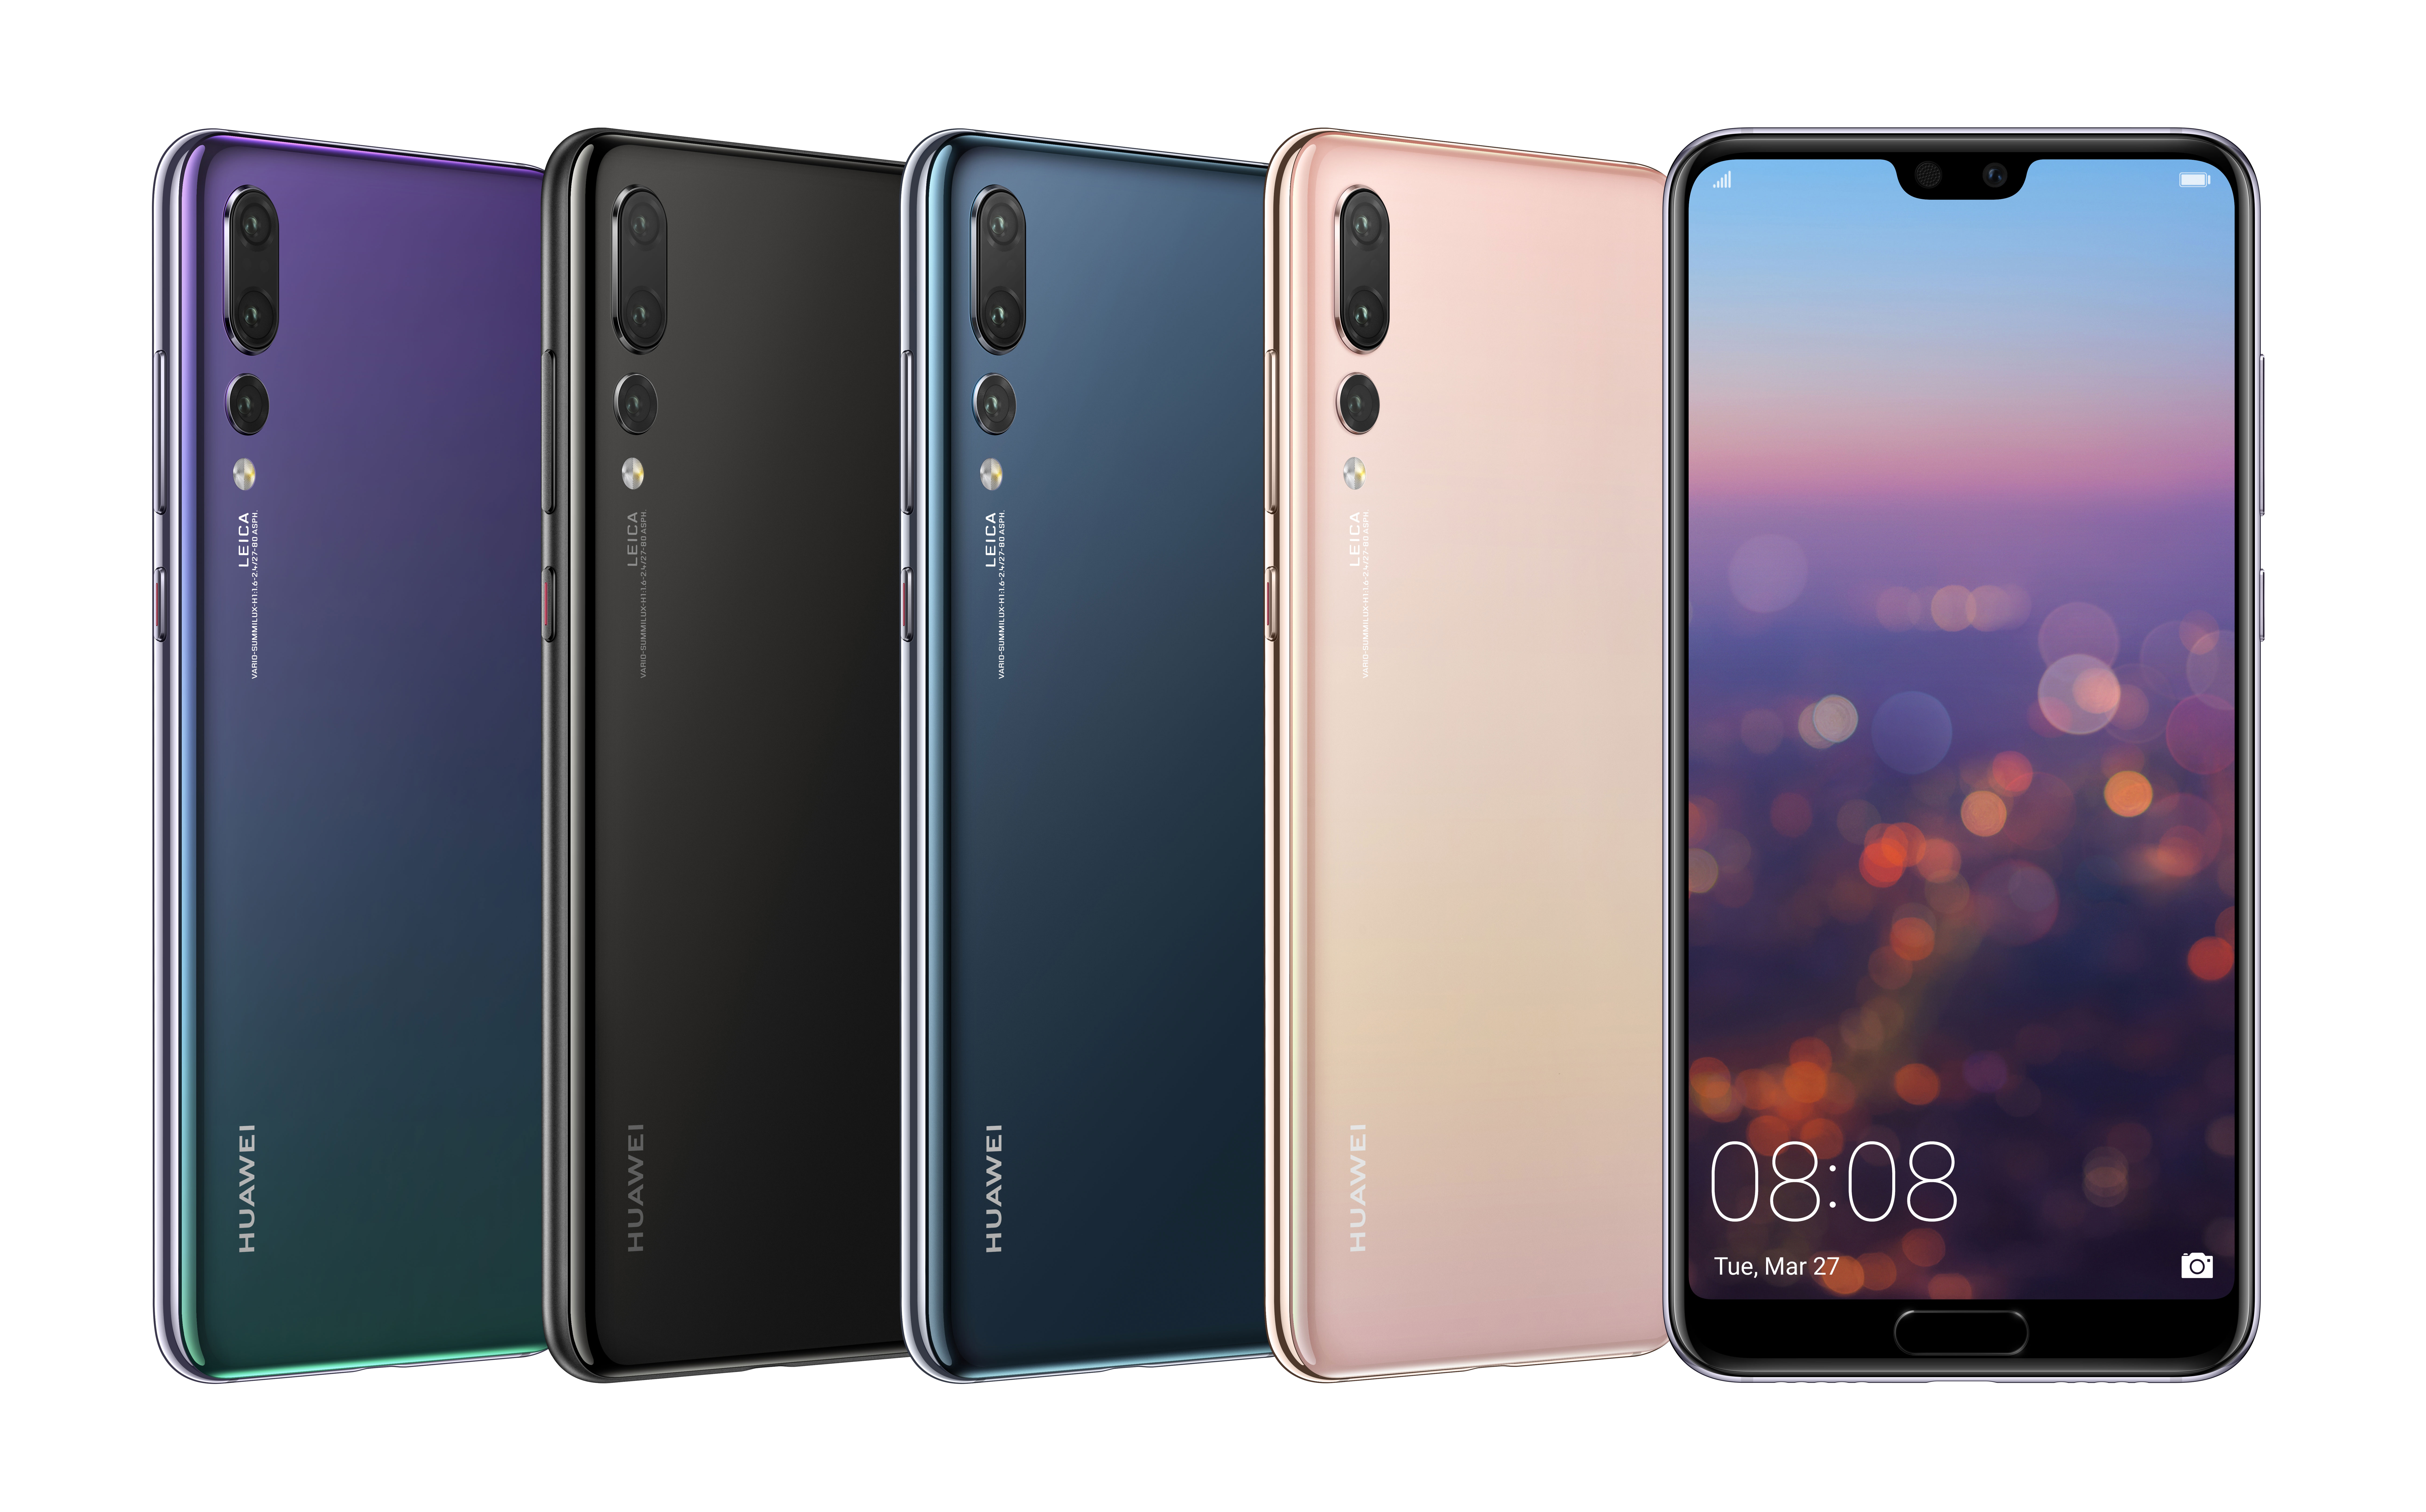 Huawei P20 And P20 Pro Colors What Shade Should You Buy Techradar